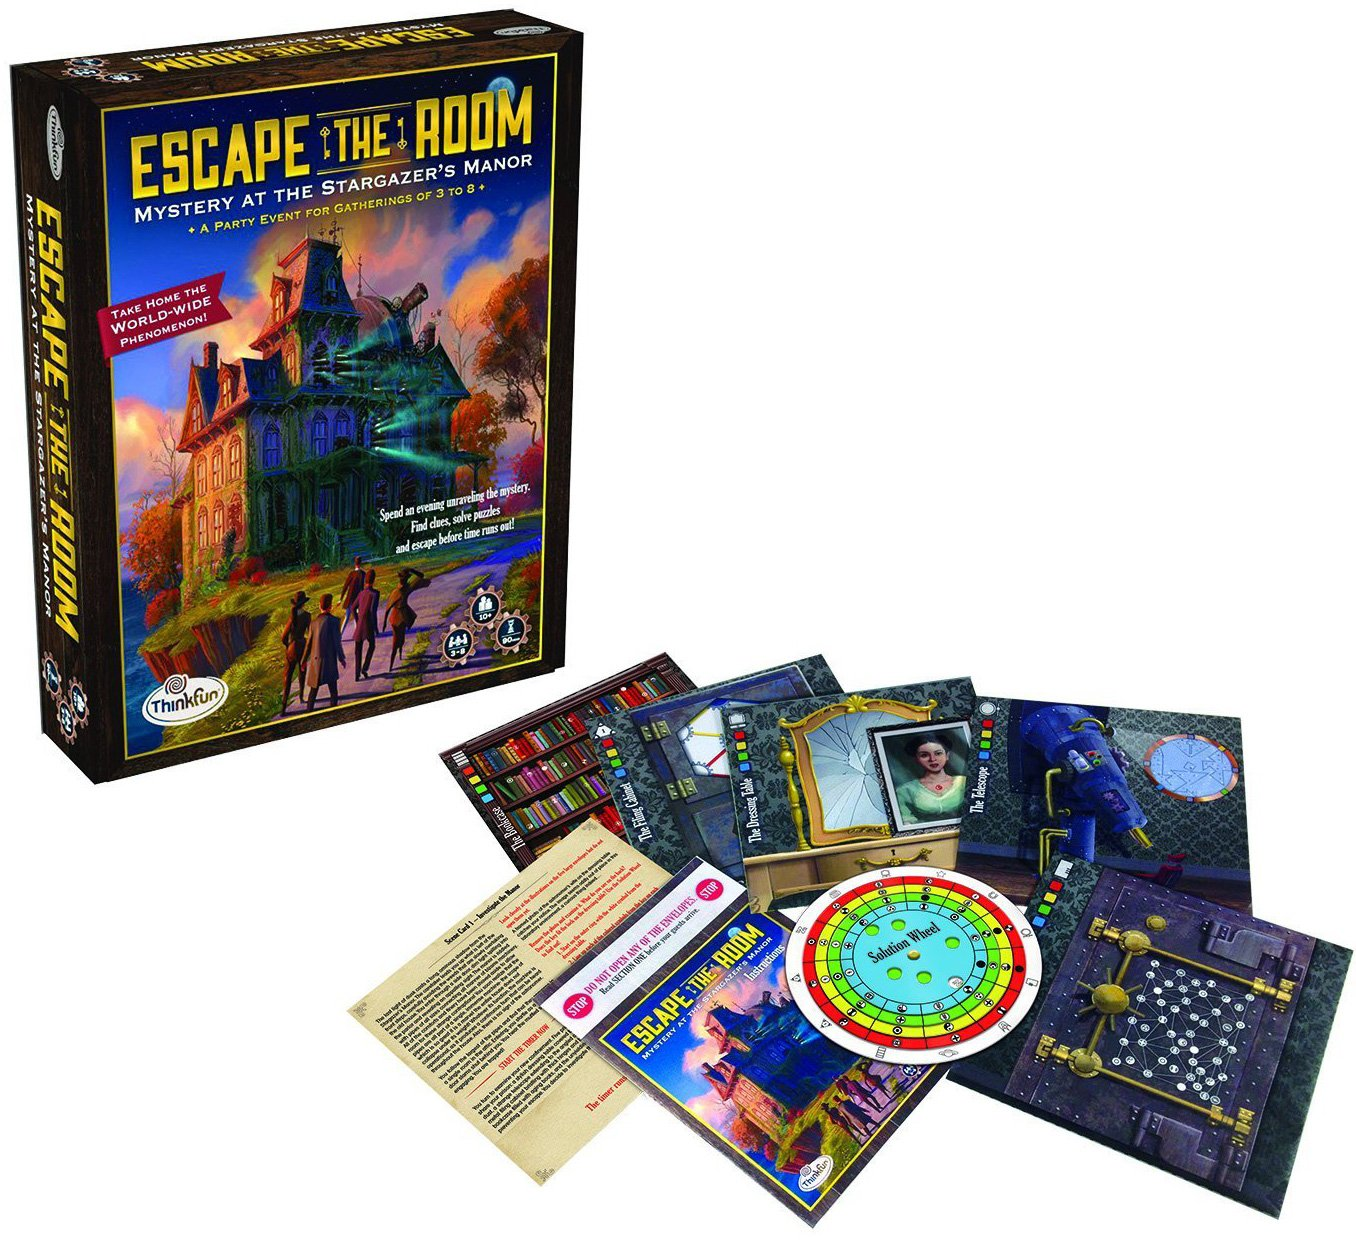 Escape the Room Game for Party Night by ThinkFun escape-the-room